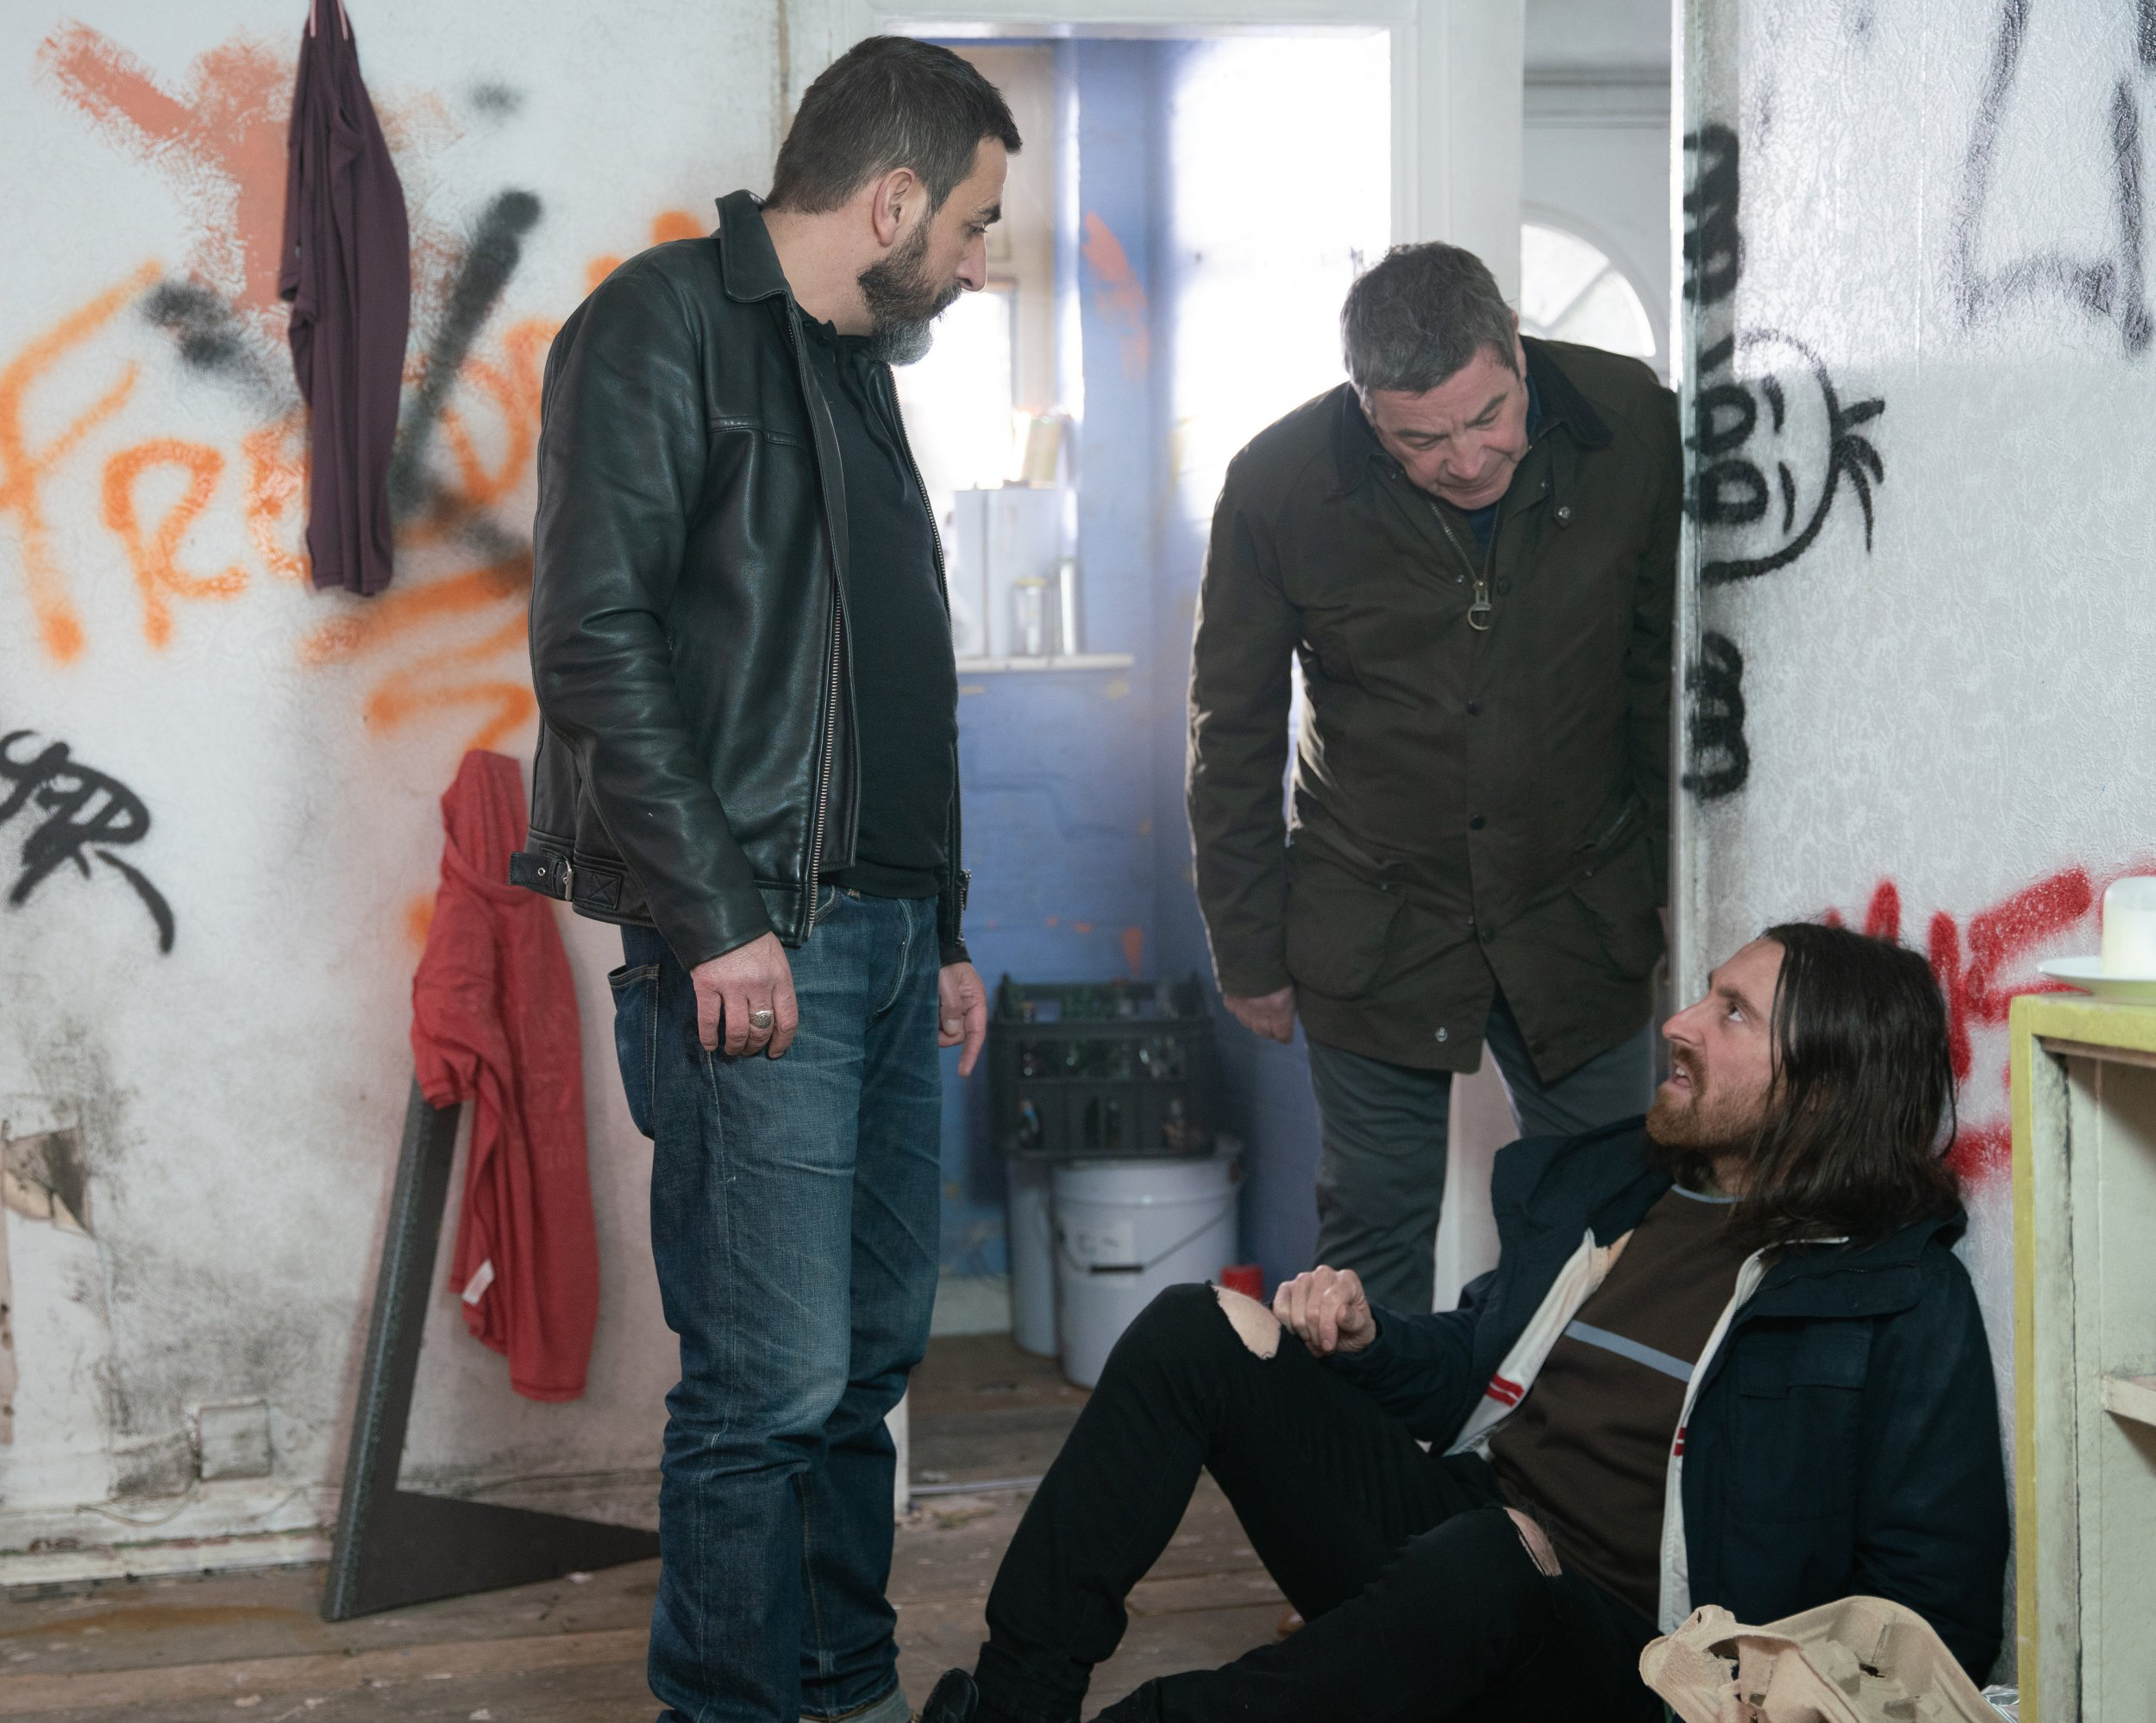 Peter goes to a squat to find Carla